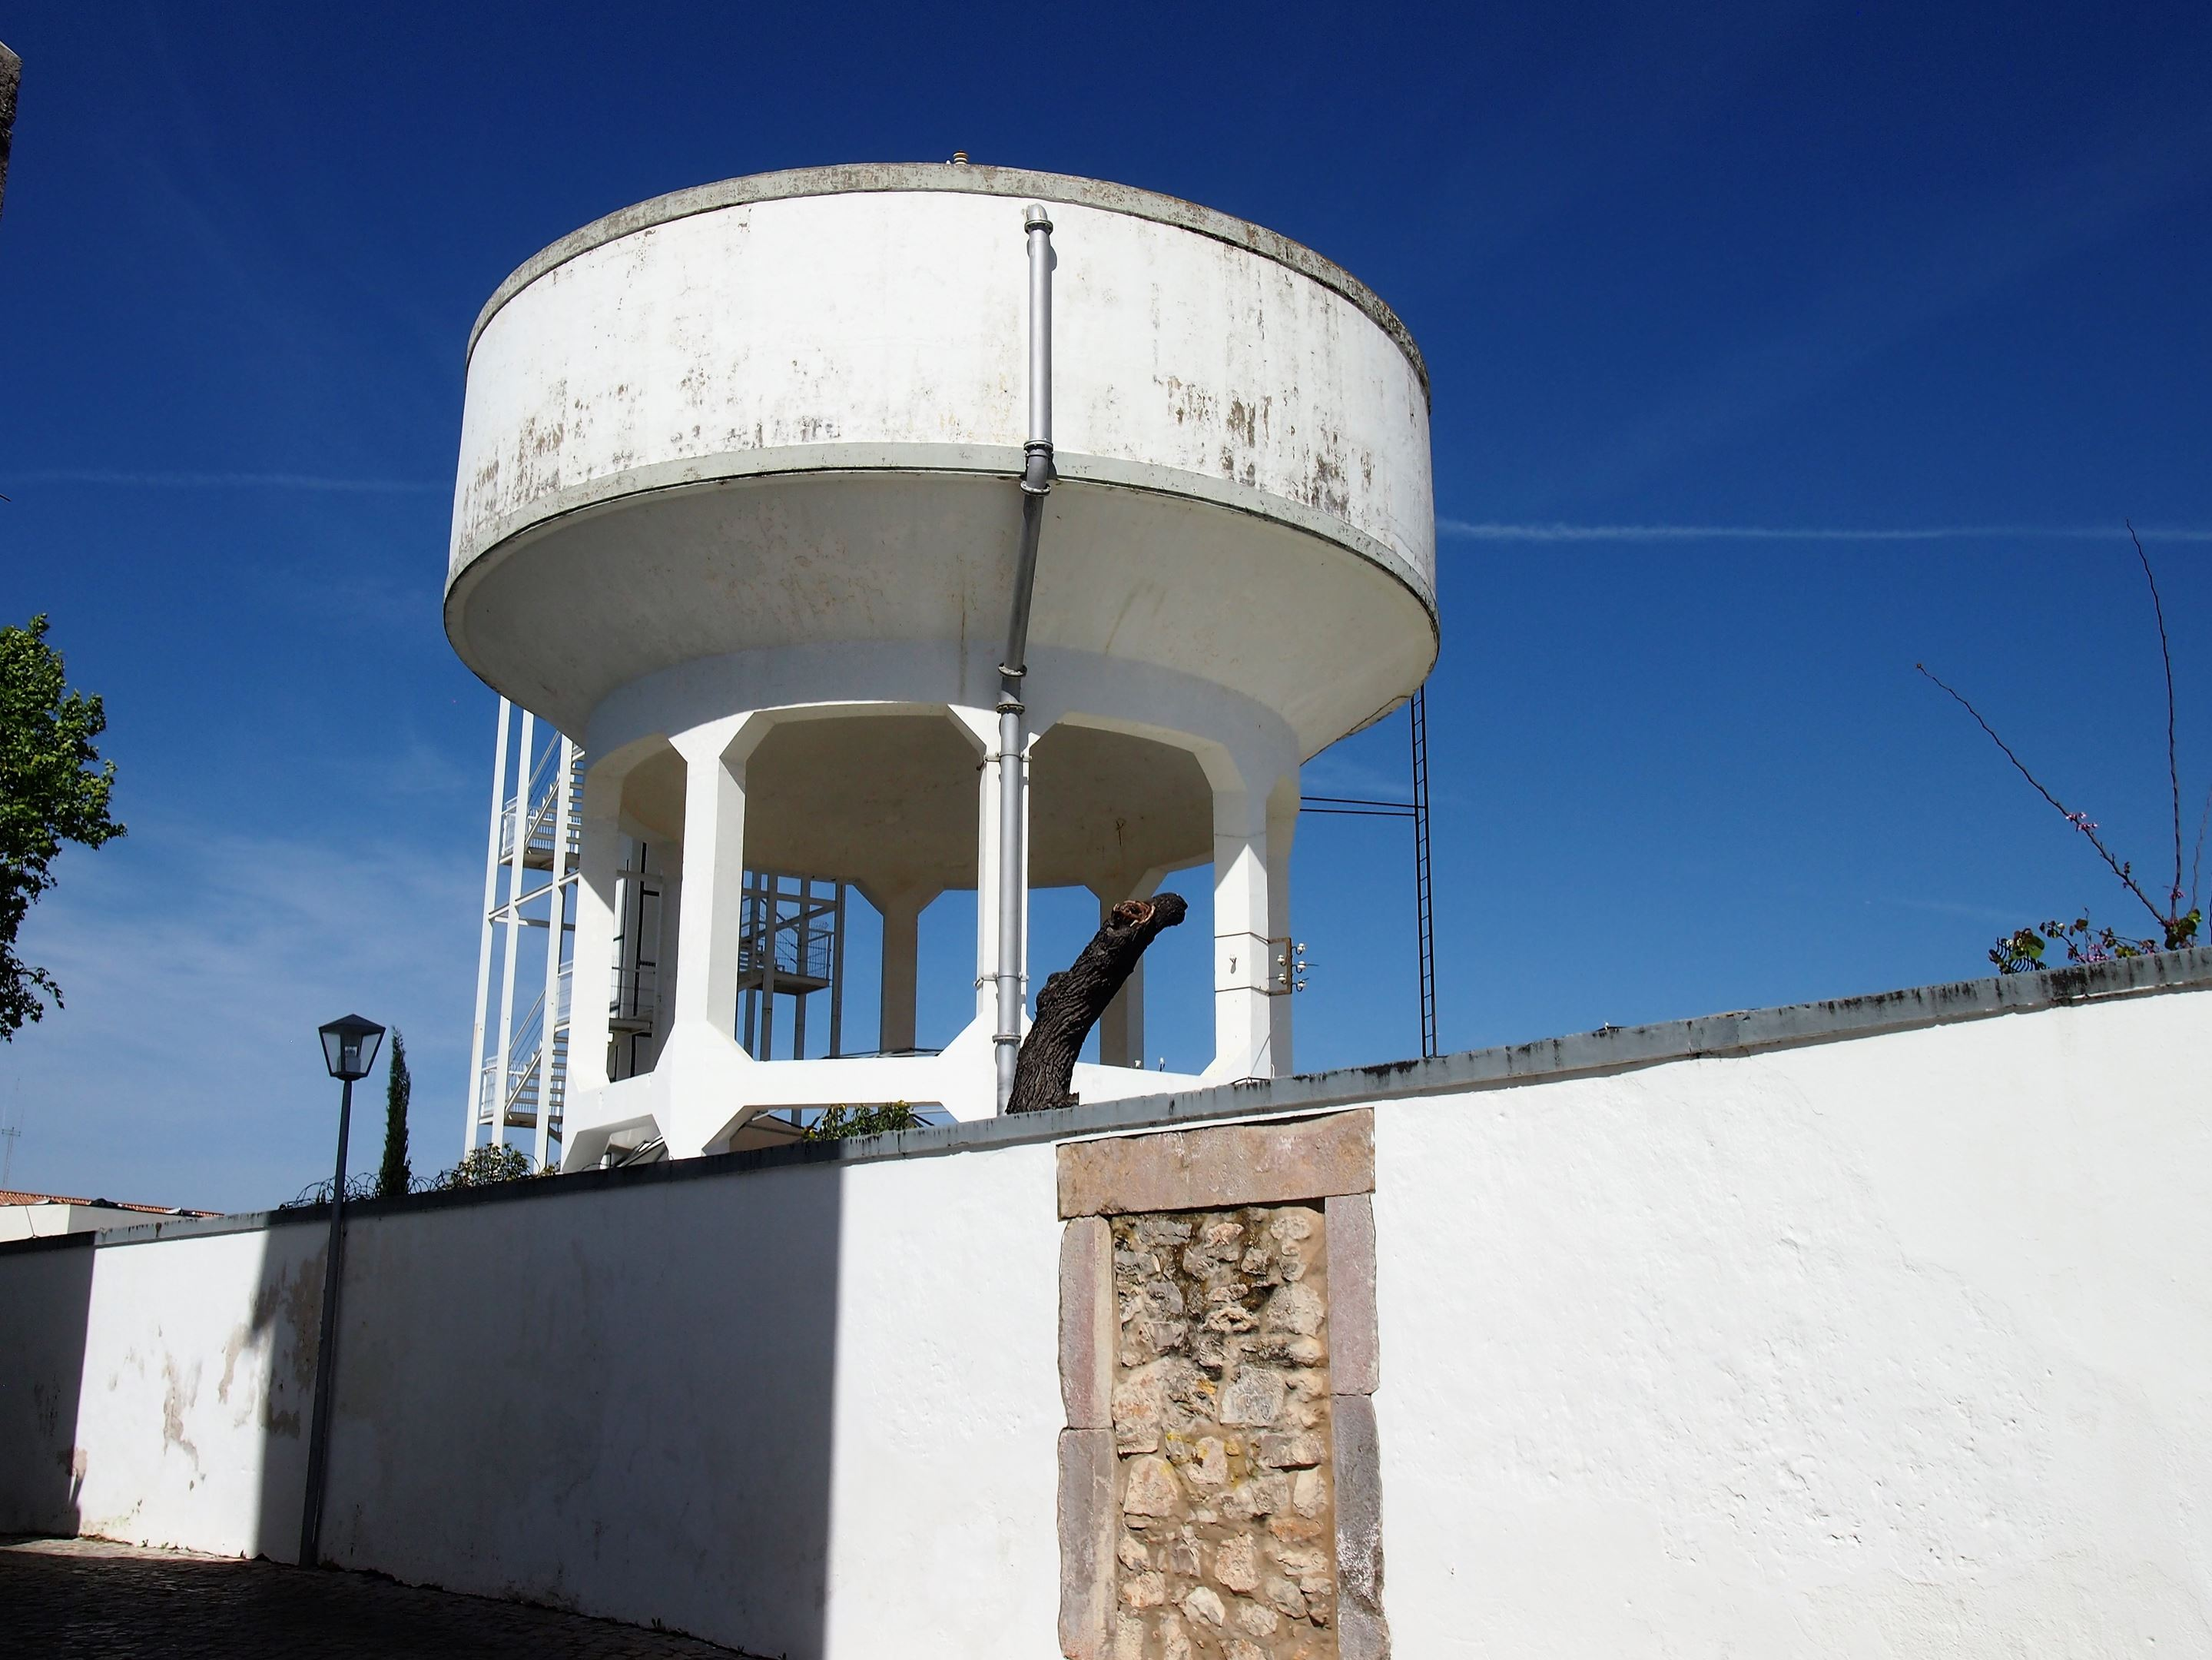 Torre de Tavira, a Camera Obscura located at the top of a water tower, Tavira